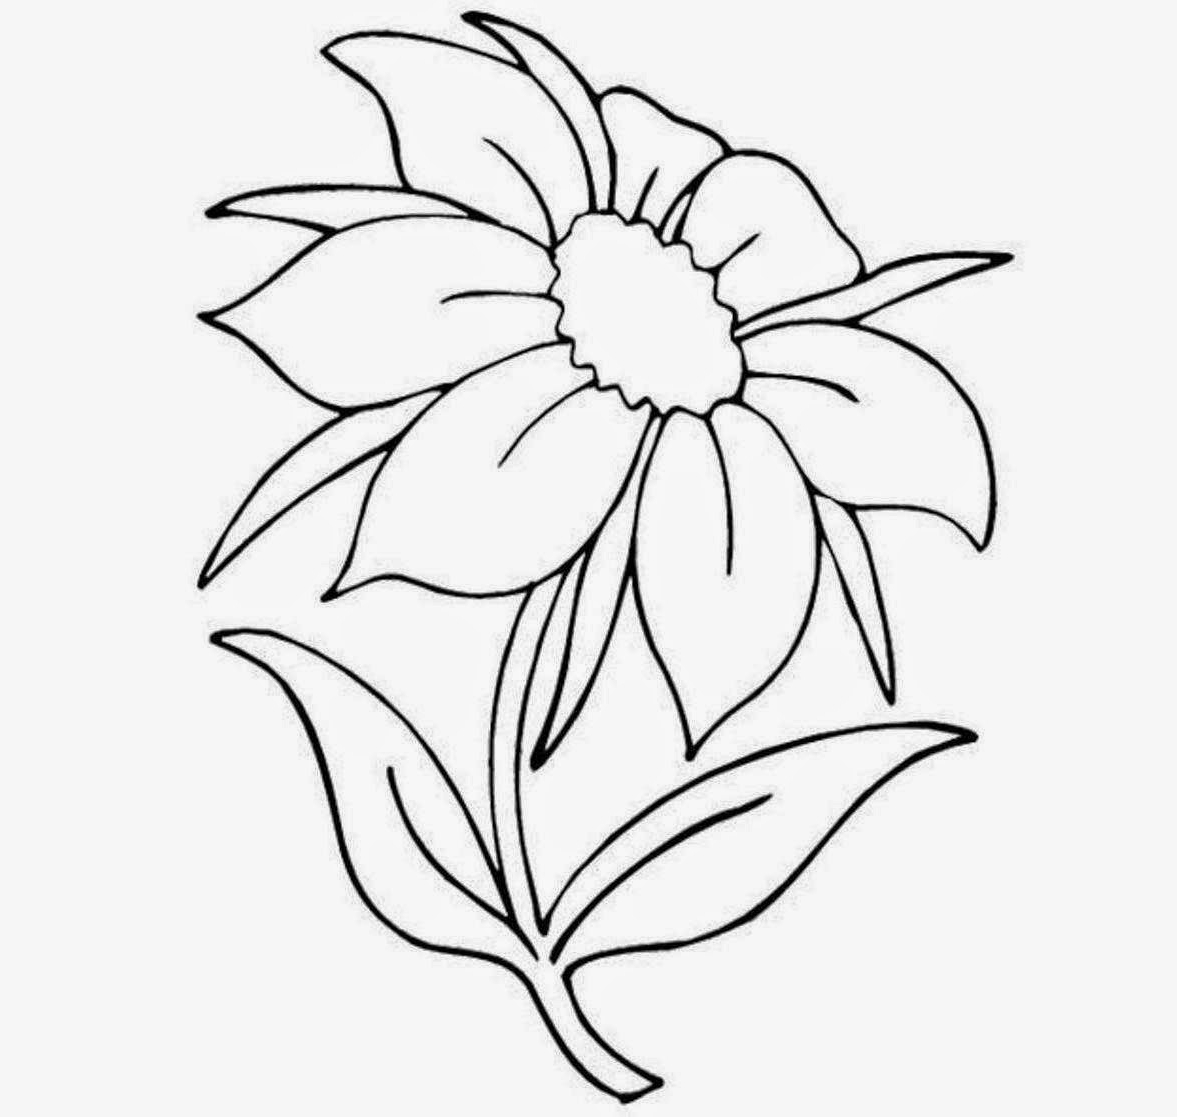 Daisies flowers drawing at getdrawings free for personal use 1177x1117 vibrant easy flower to draw drawing the daisy how draw daisies izmirmasajfo